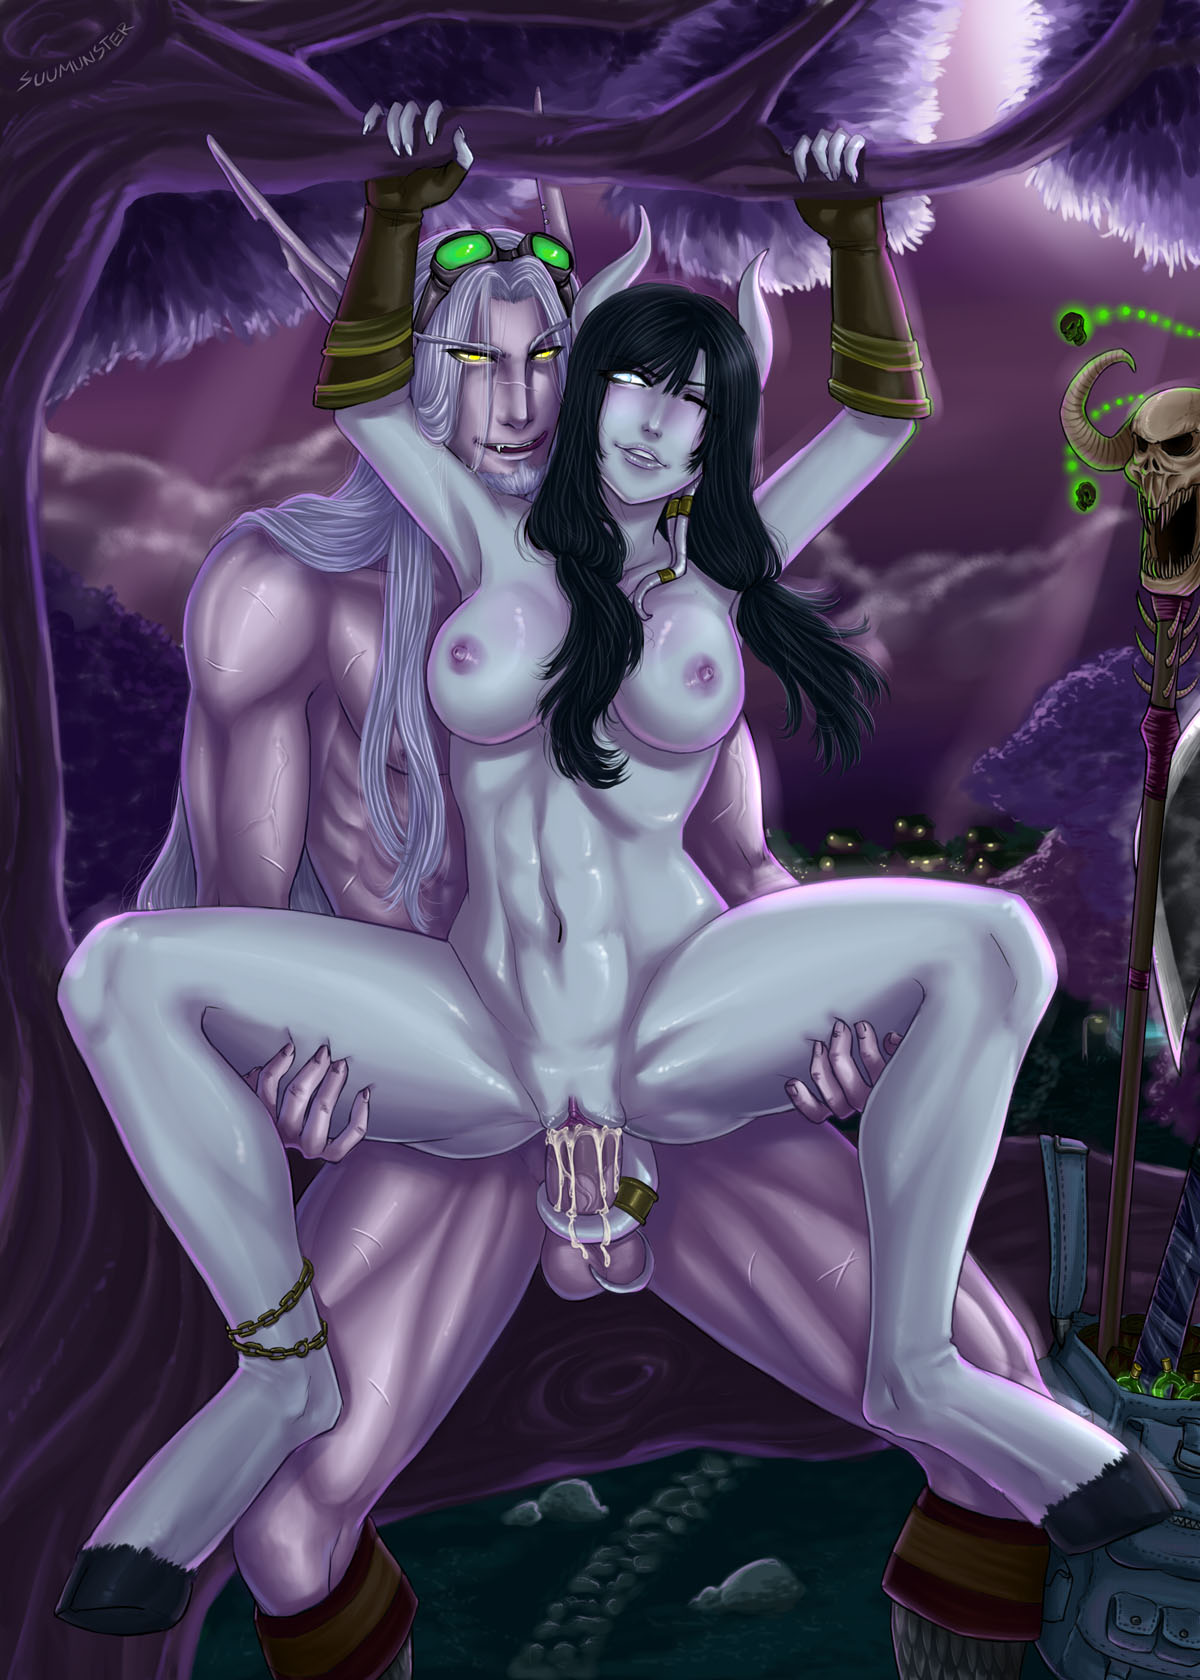 World of warcraft porno photos anime videos